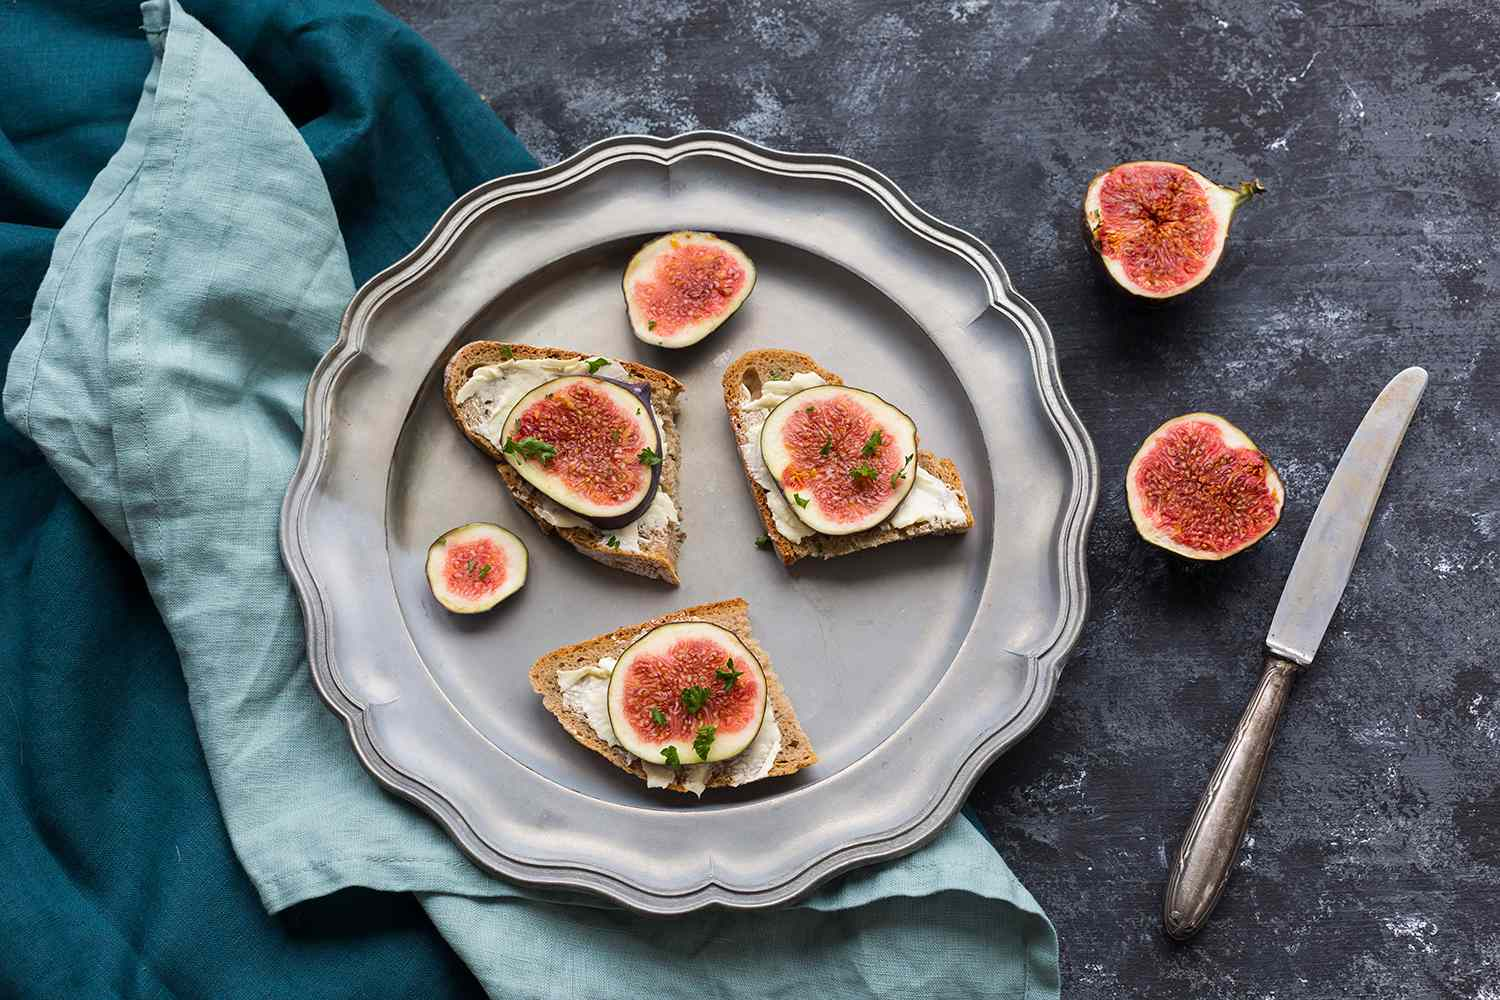 Buttered slices of bread with sliced figs on tin plate